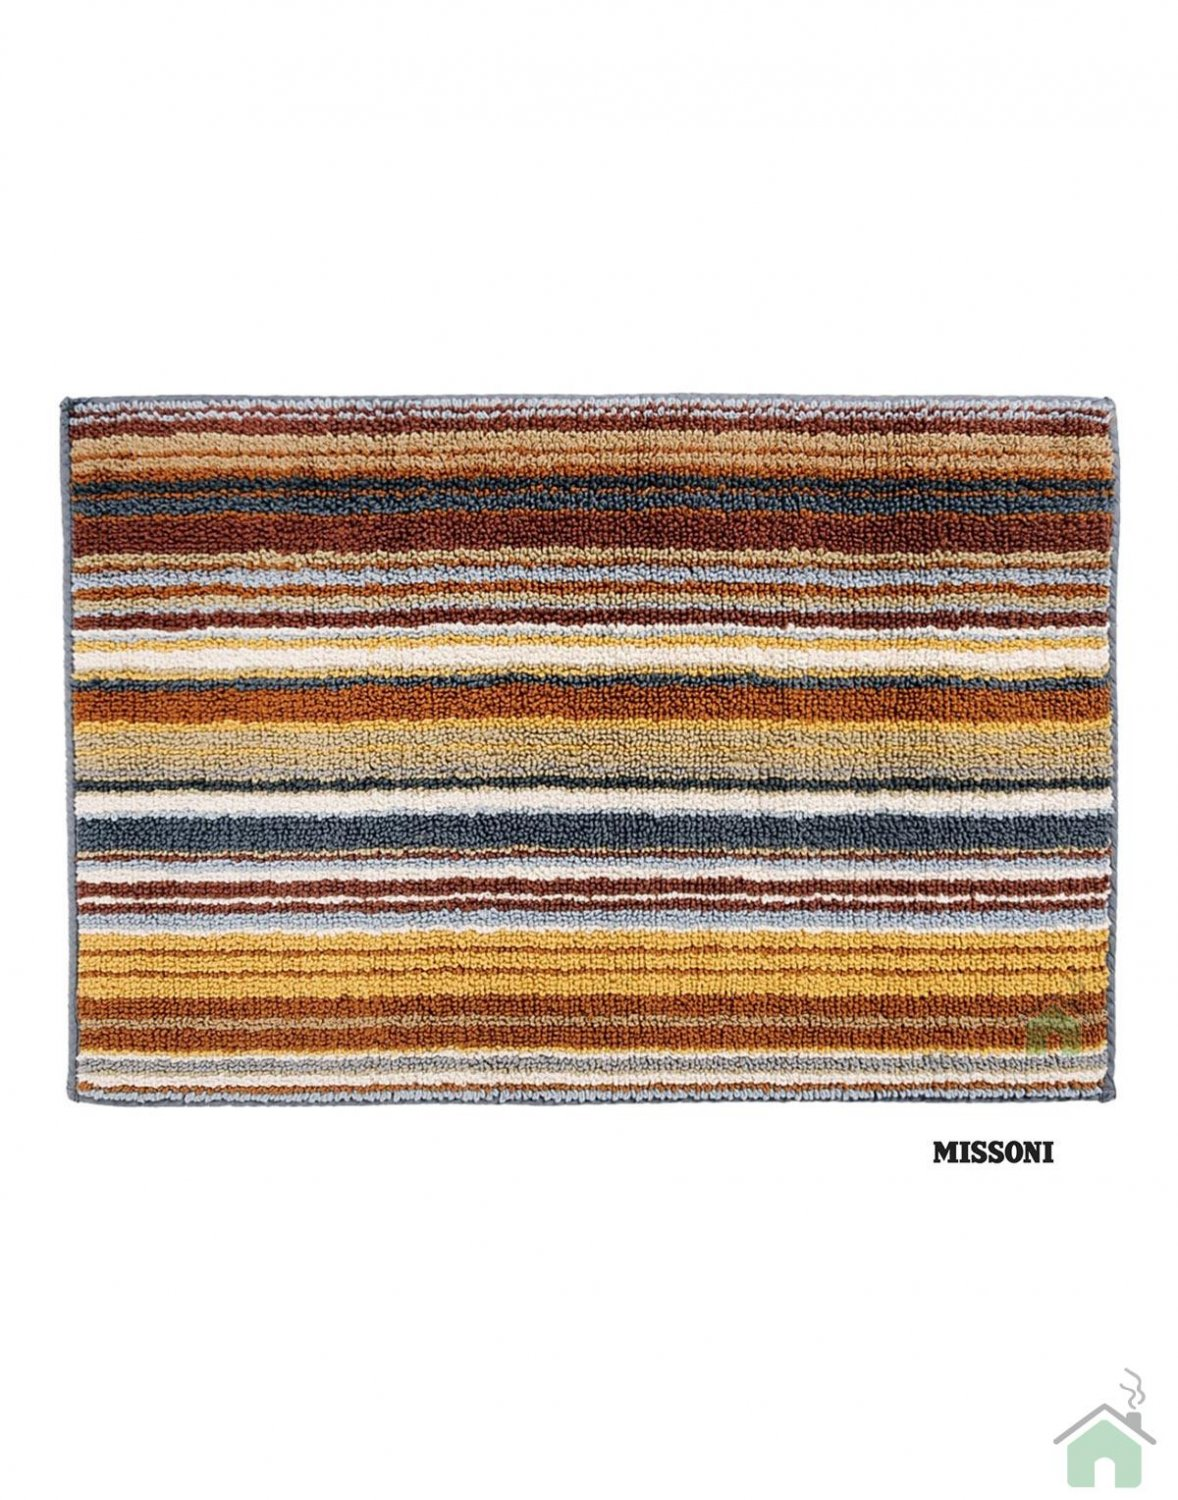 Missoni Jazz 160 n. 2 bathmats - 2014 Collection